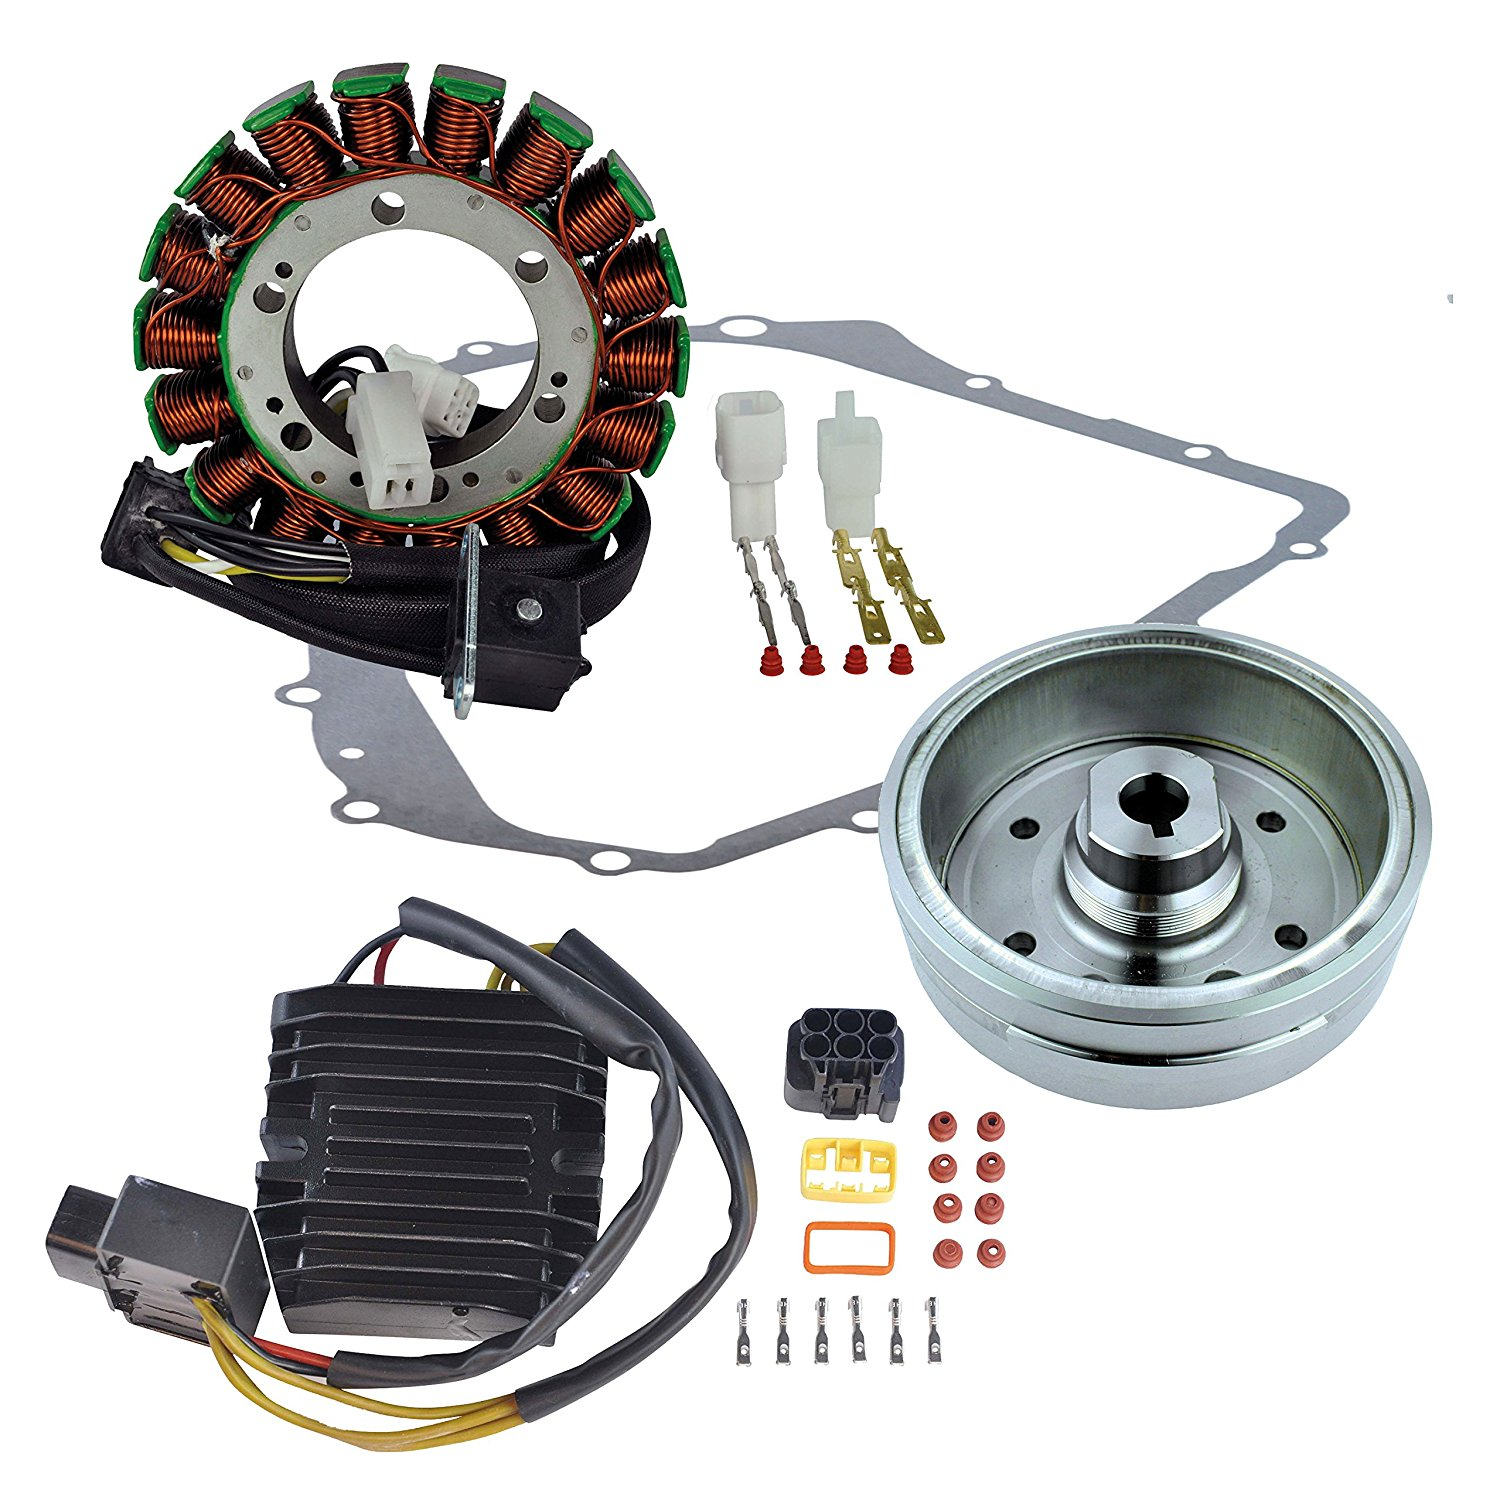 Kit Stator + Improved Flywheel + Mosfet Regulator Rectifier + Crankcase Cover Gasket For Suzuki LTA 400 Eiger 2002 2003 2004 2005 2006 2007